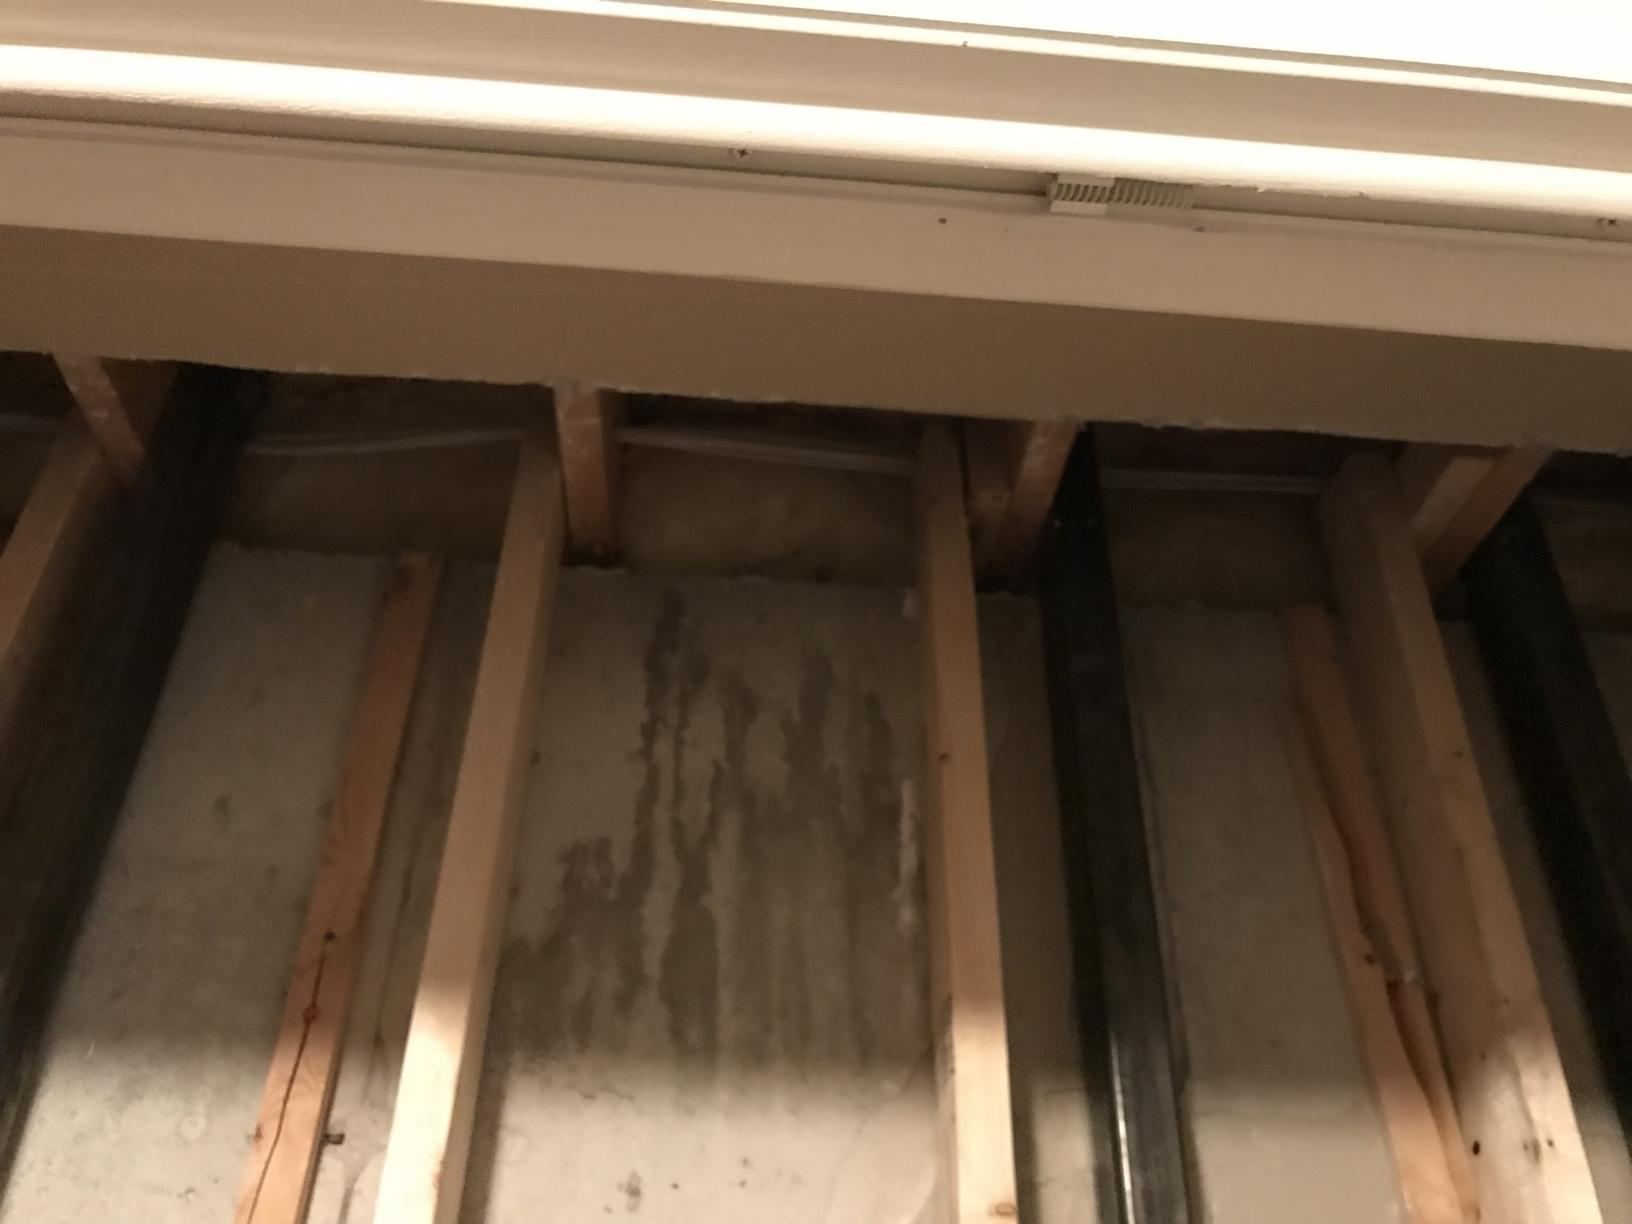 Insulating Rim Joists with Spray Foam in Fond du Lac, WI - Before Photo